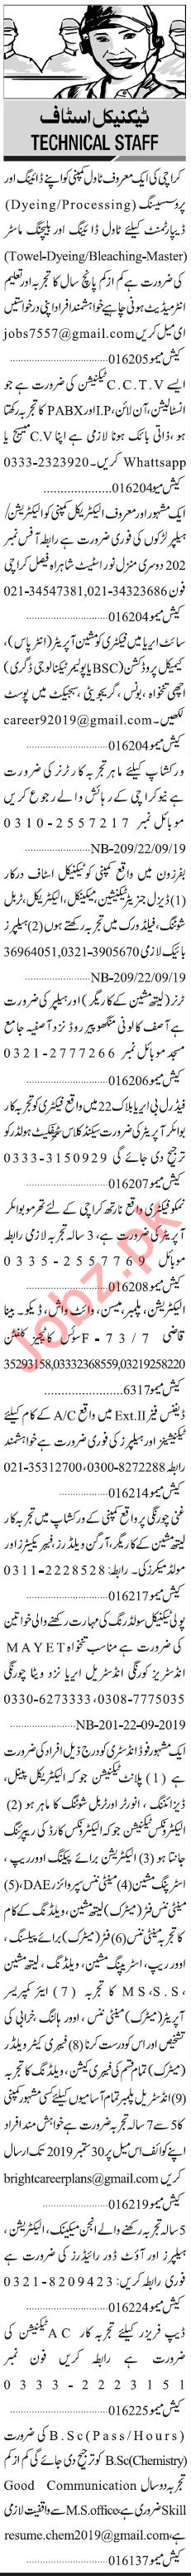 Jang Sunday Classified Ads 6th Oct 2019 for Technical Staff